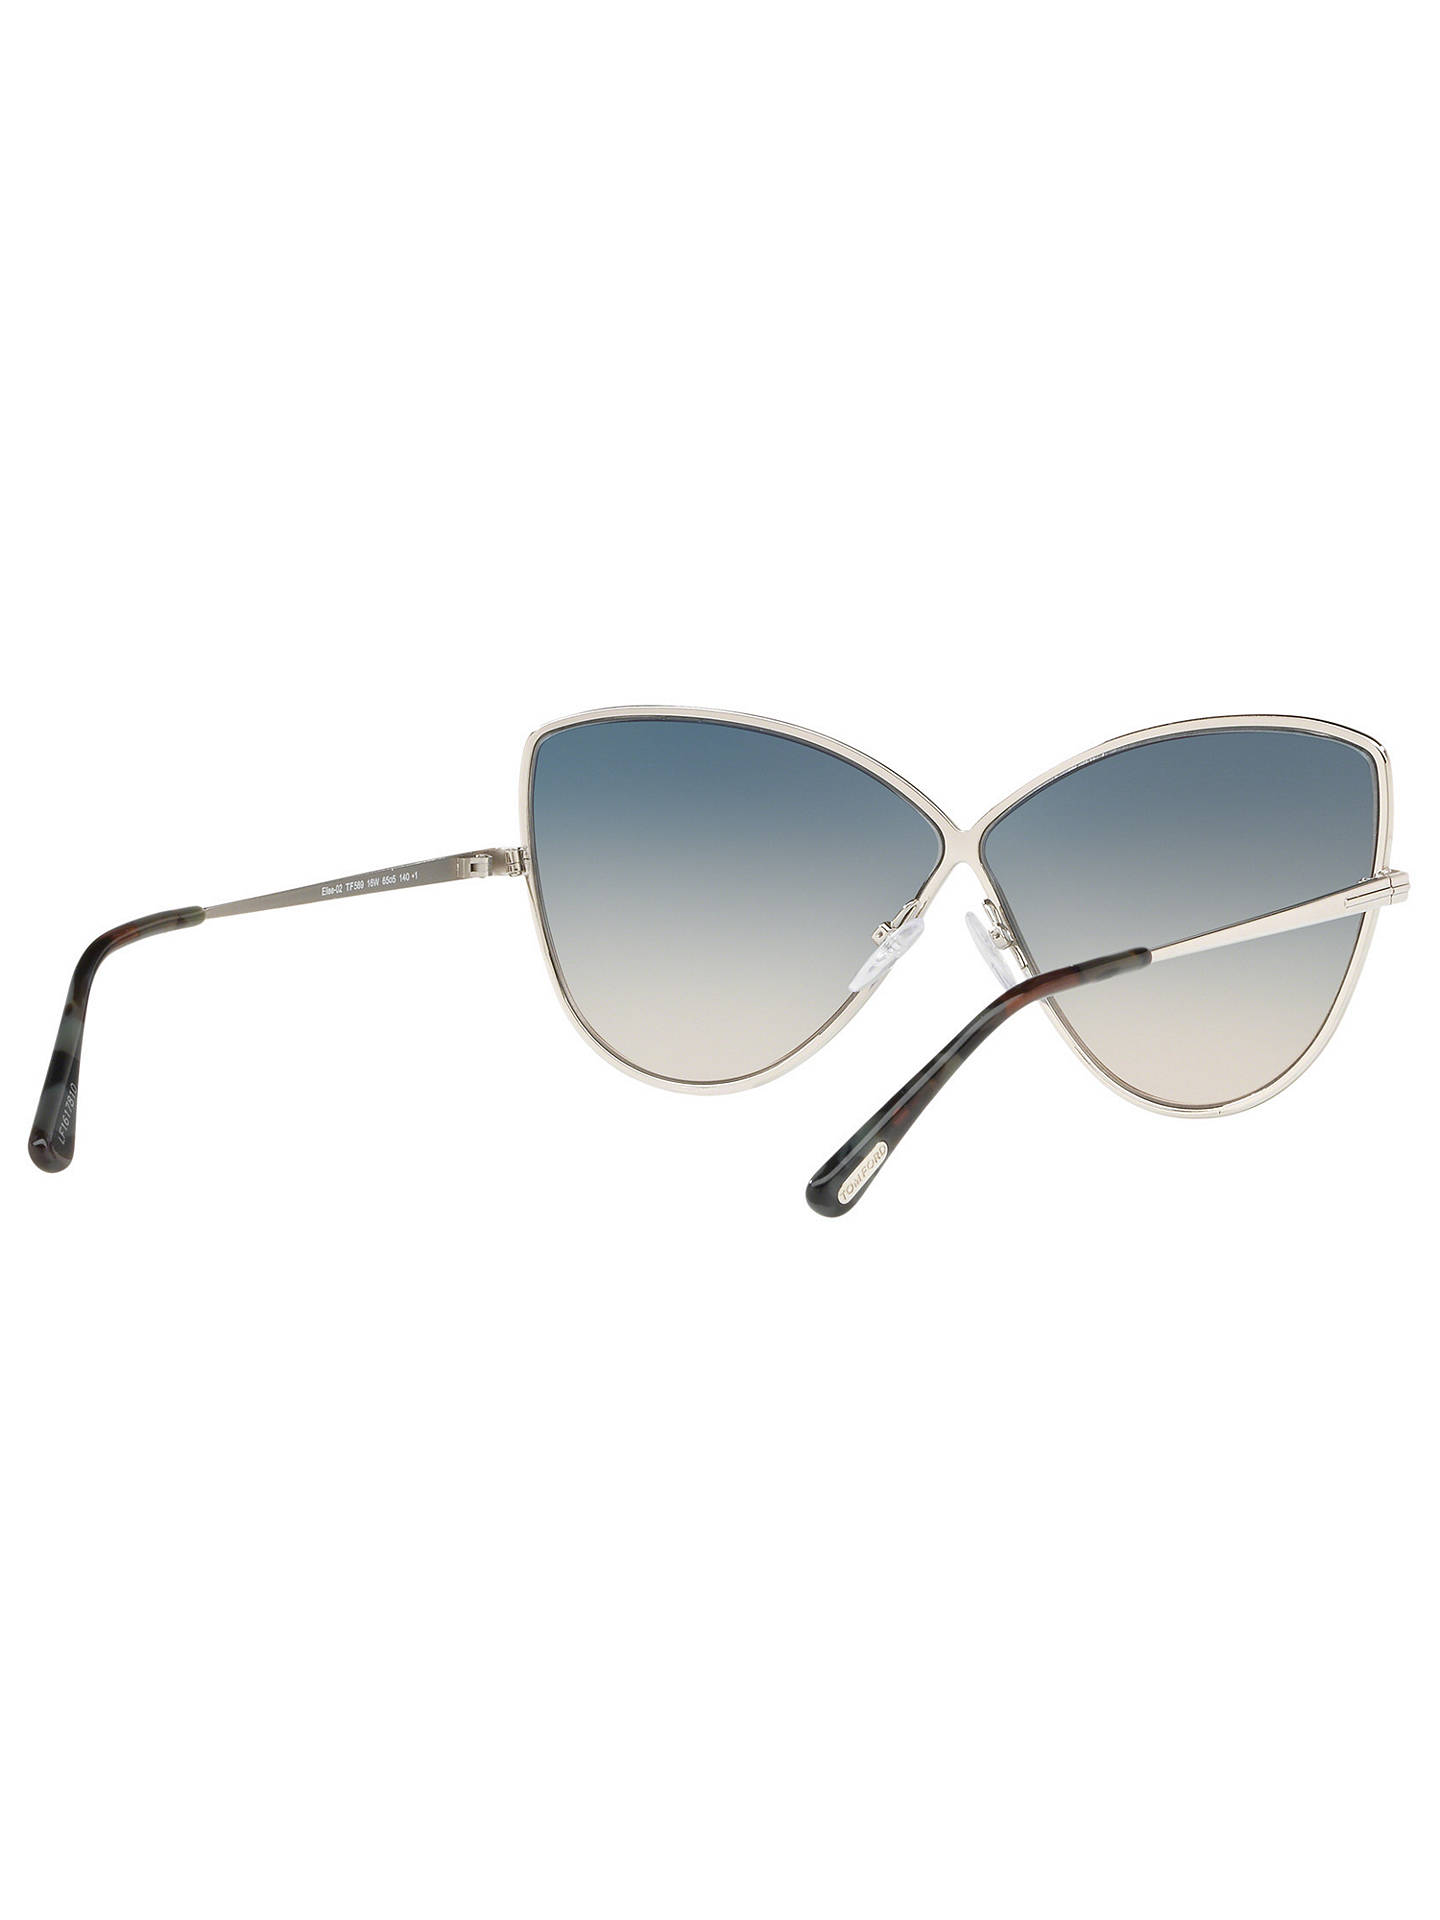 BuyTOM FORD FT0569 Elise-02 Cat's Eye Sunglasses, Silver/Blue Gradient Online at johnlewis.com